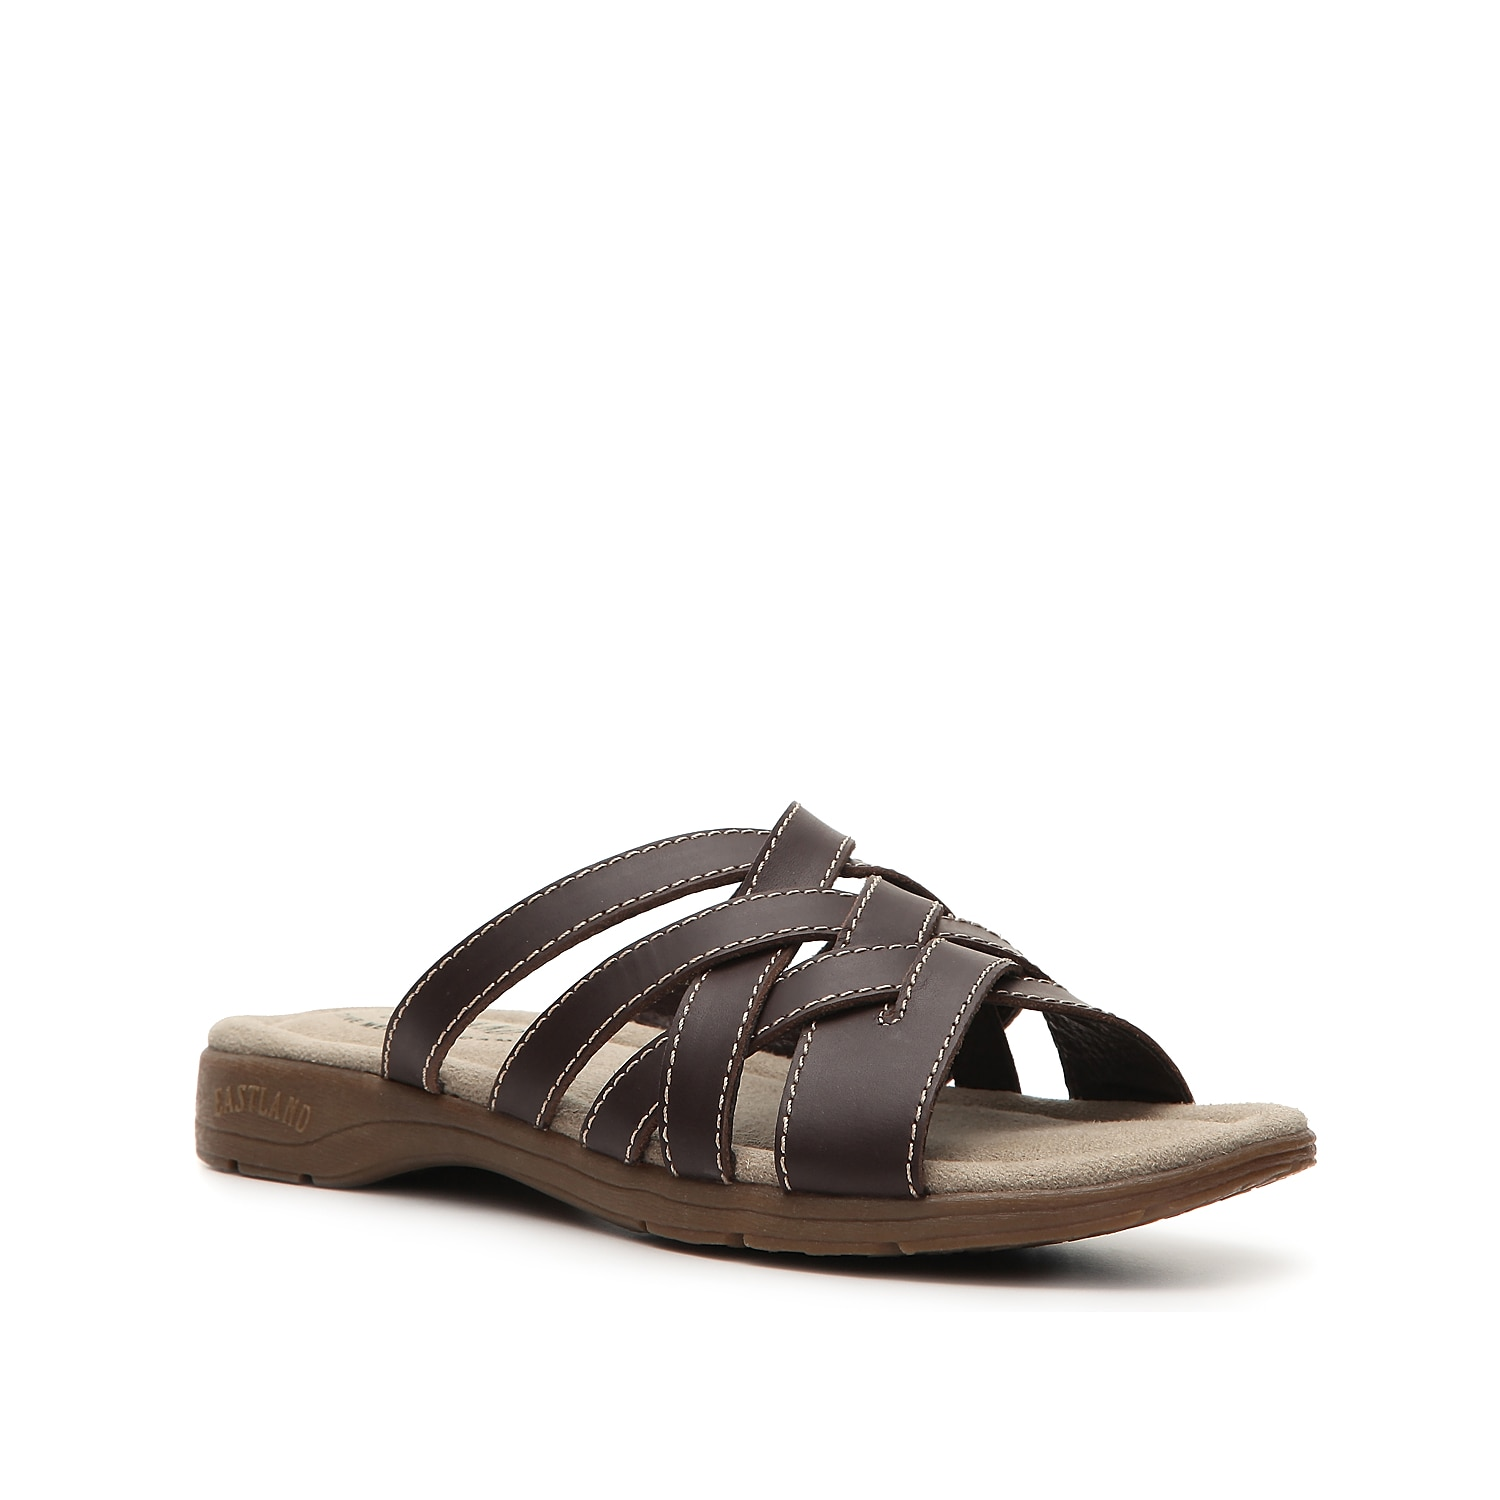 Slip on a woven leather sandal designed for both comfort and style! With a plush memory foam footbed, the Eastland Hazel slide sandals are the perfect flat sandals for all day casual wear.